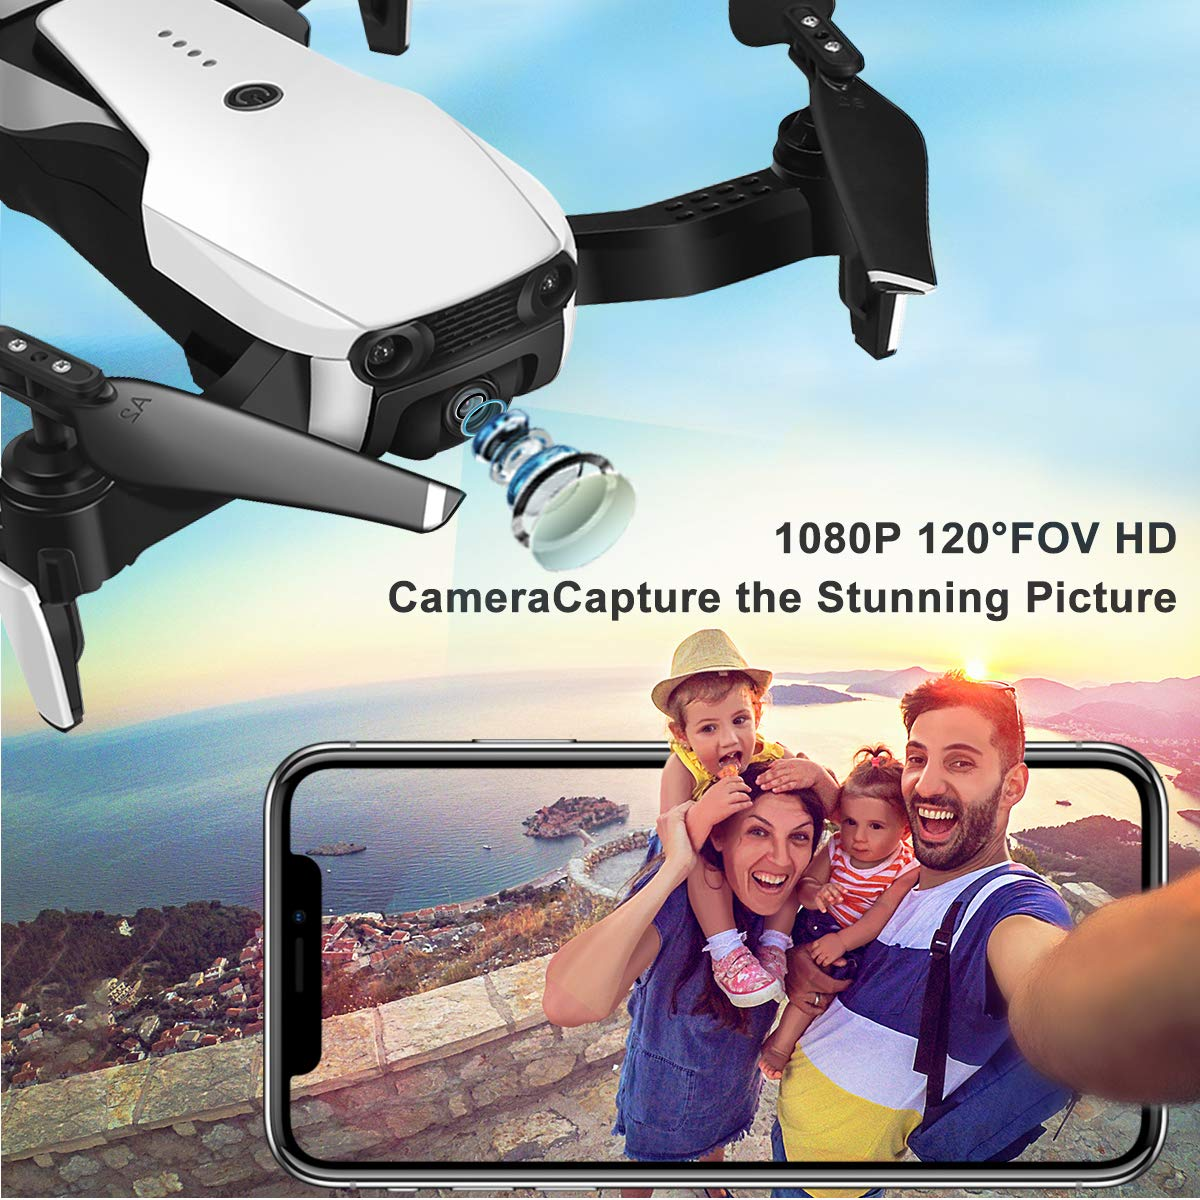 Drones with Camera 1080P for Adults,EACHINE E511 WiFi FPV Live Video Quadcopter with 120° FOV 1080P HD Camera, 17mins Long Flight Time Foldable RC Drone RTF - Altitude Hold, 3D Flip, APP Control by EACHINE (Image #2)